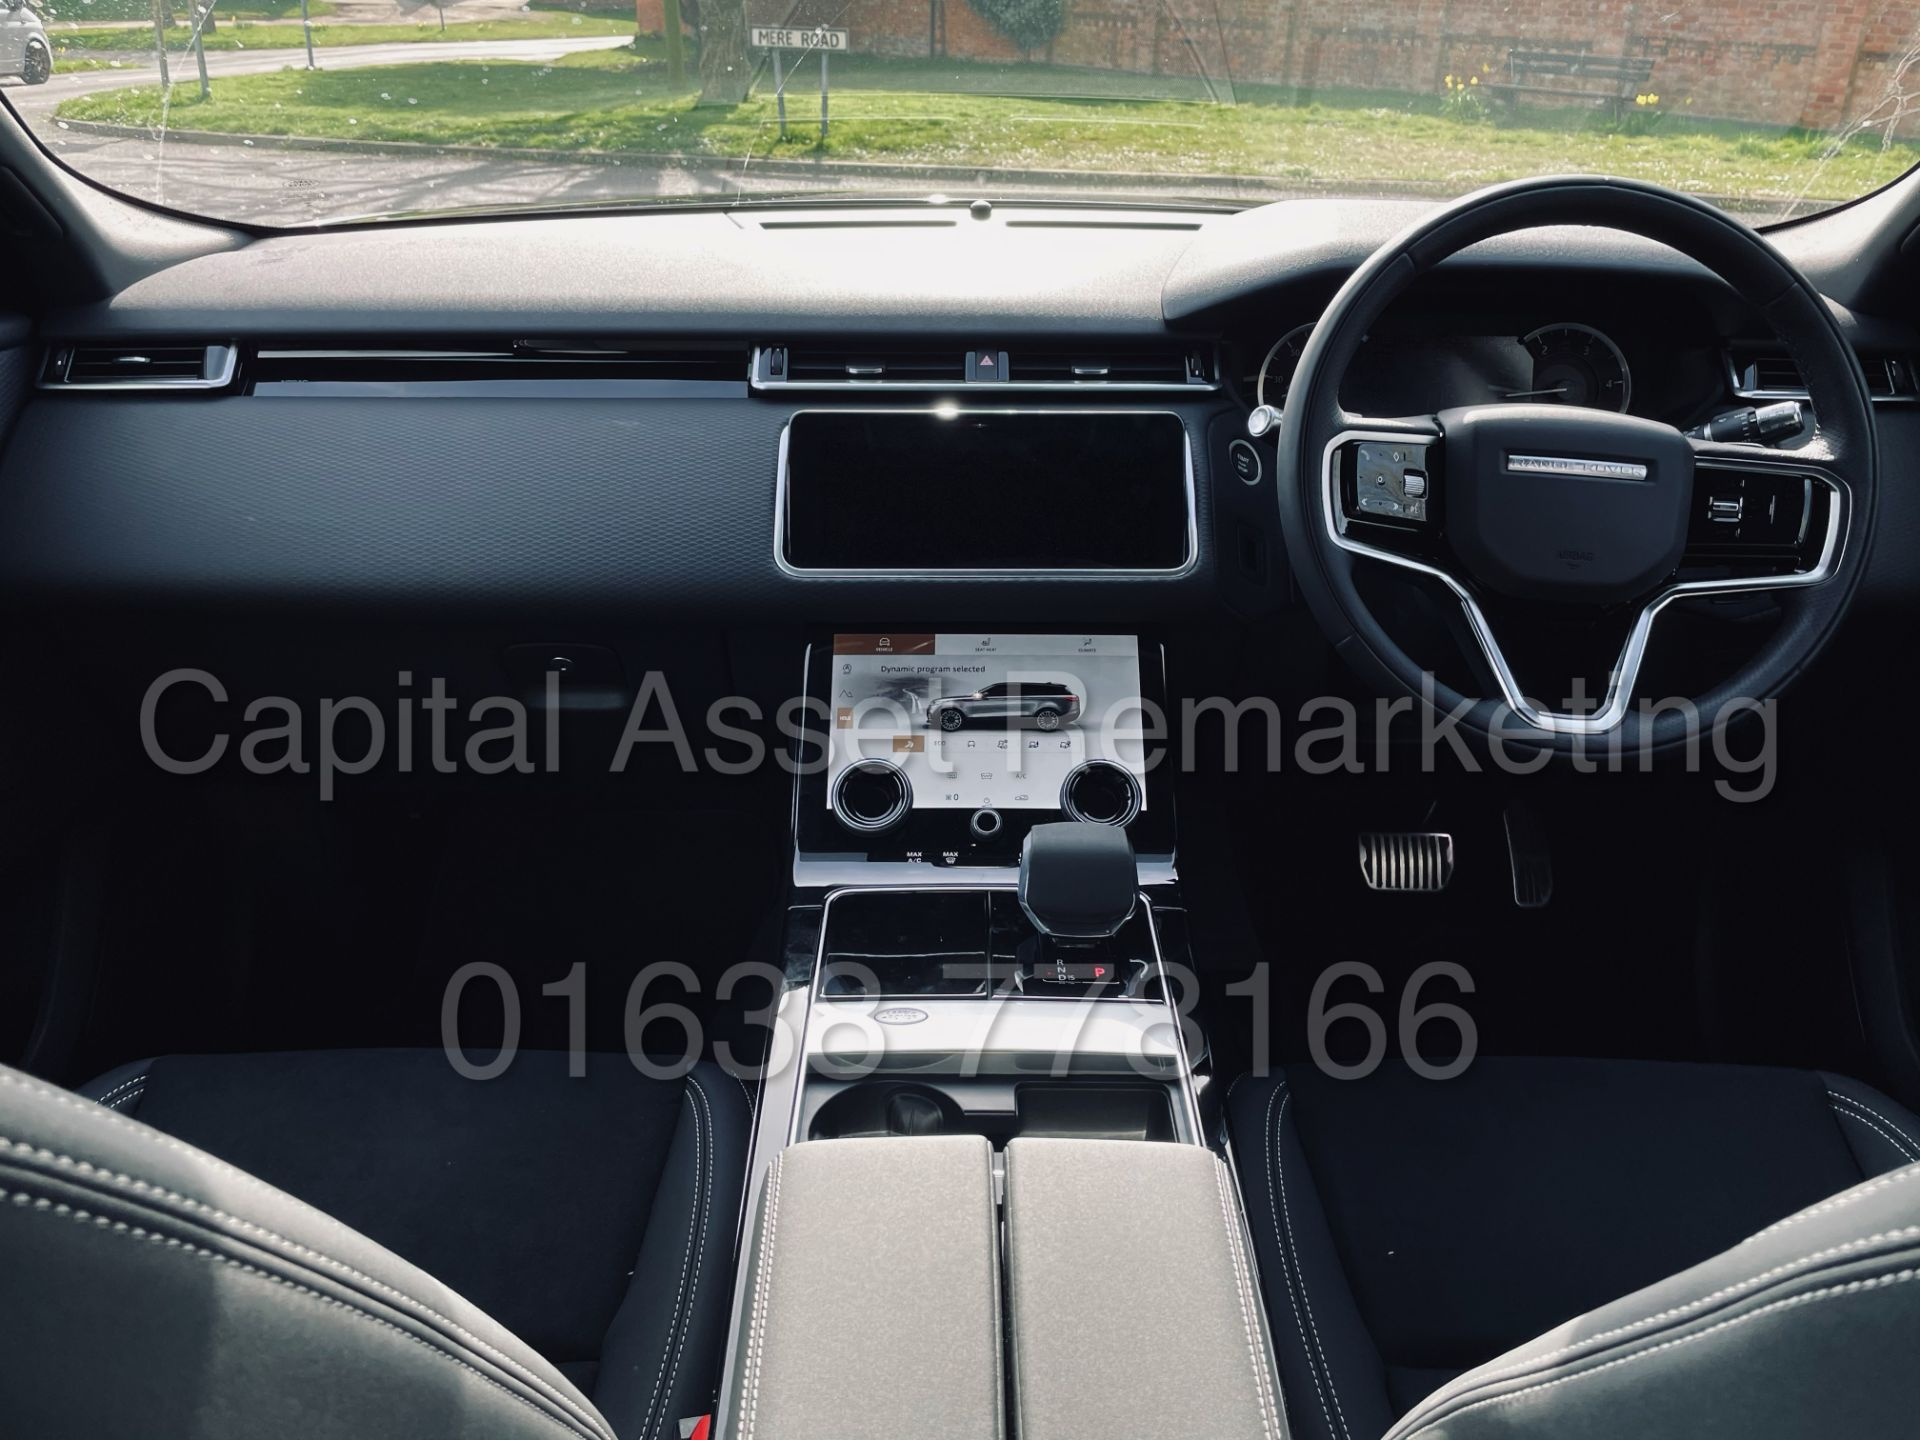 (On Sale) RANGE ROVER VELAR *R-DYNAMIC* SUV (2021) *8 SPEED AUTO - LEATHER* (DELIVERY MILES) - Image 32 of 50